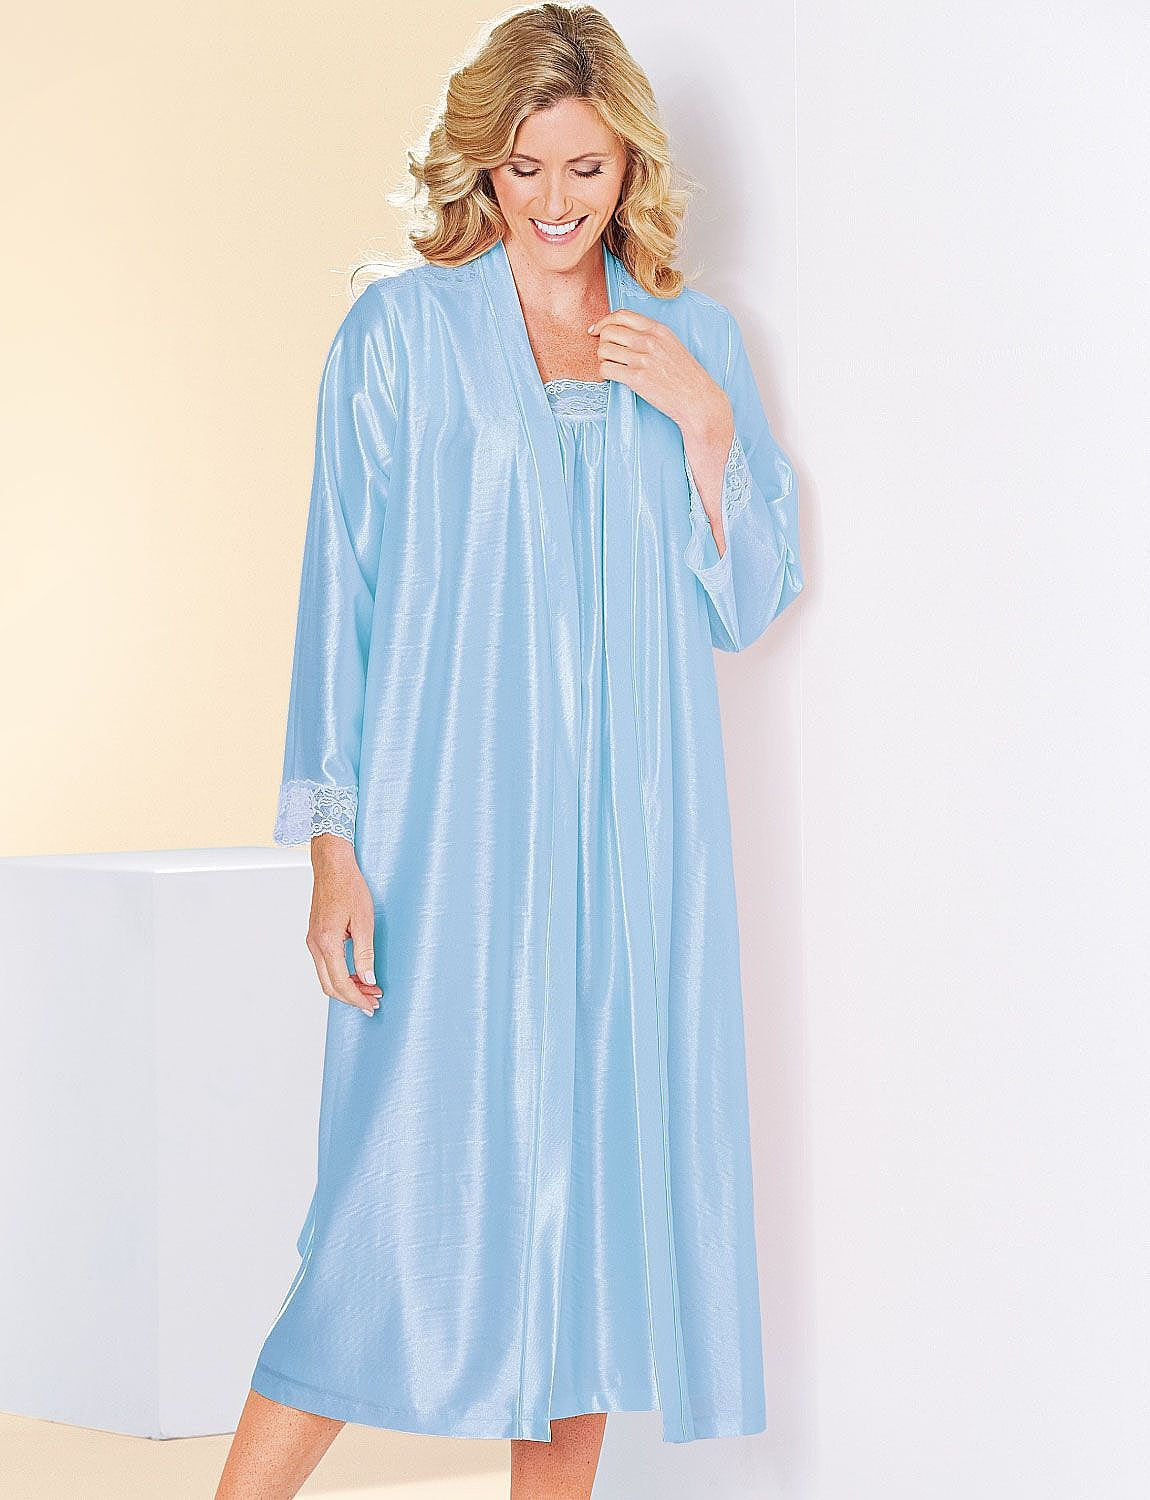 Women's Pajamas, Sleepwear and RobesCategories: Women, Baby & Maternity, Beauty & Wellness, Boys, Debut Brands and more.